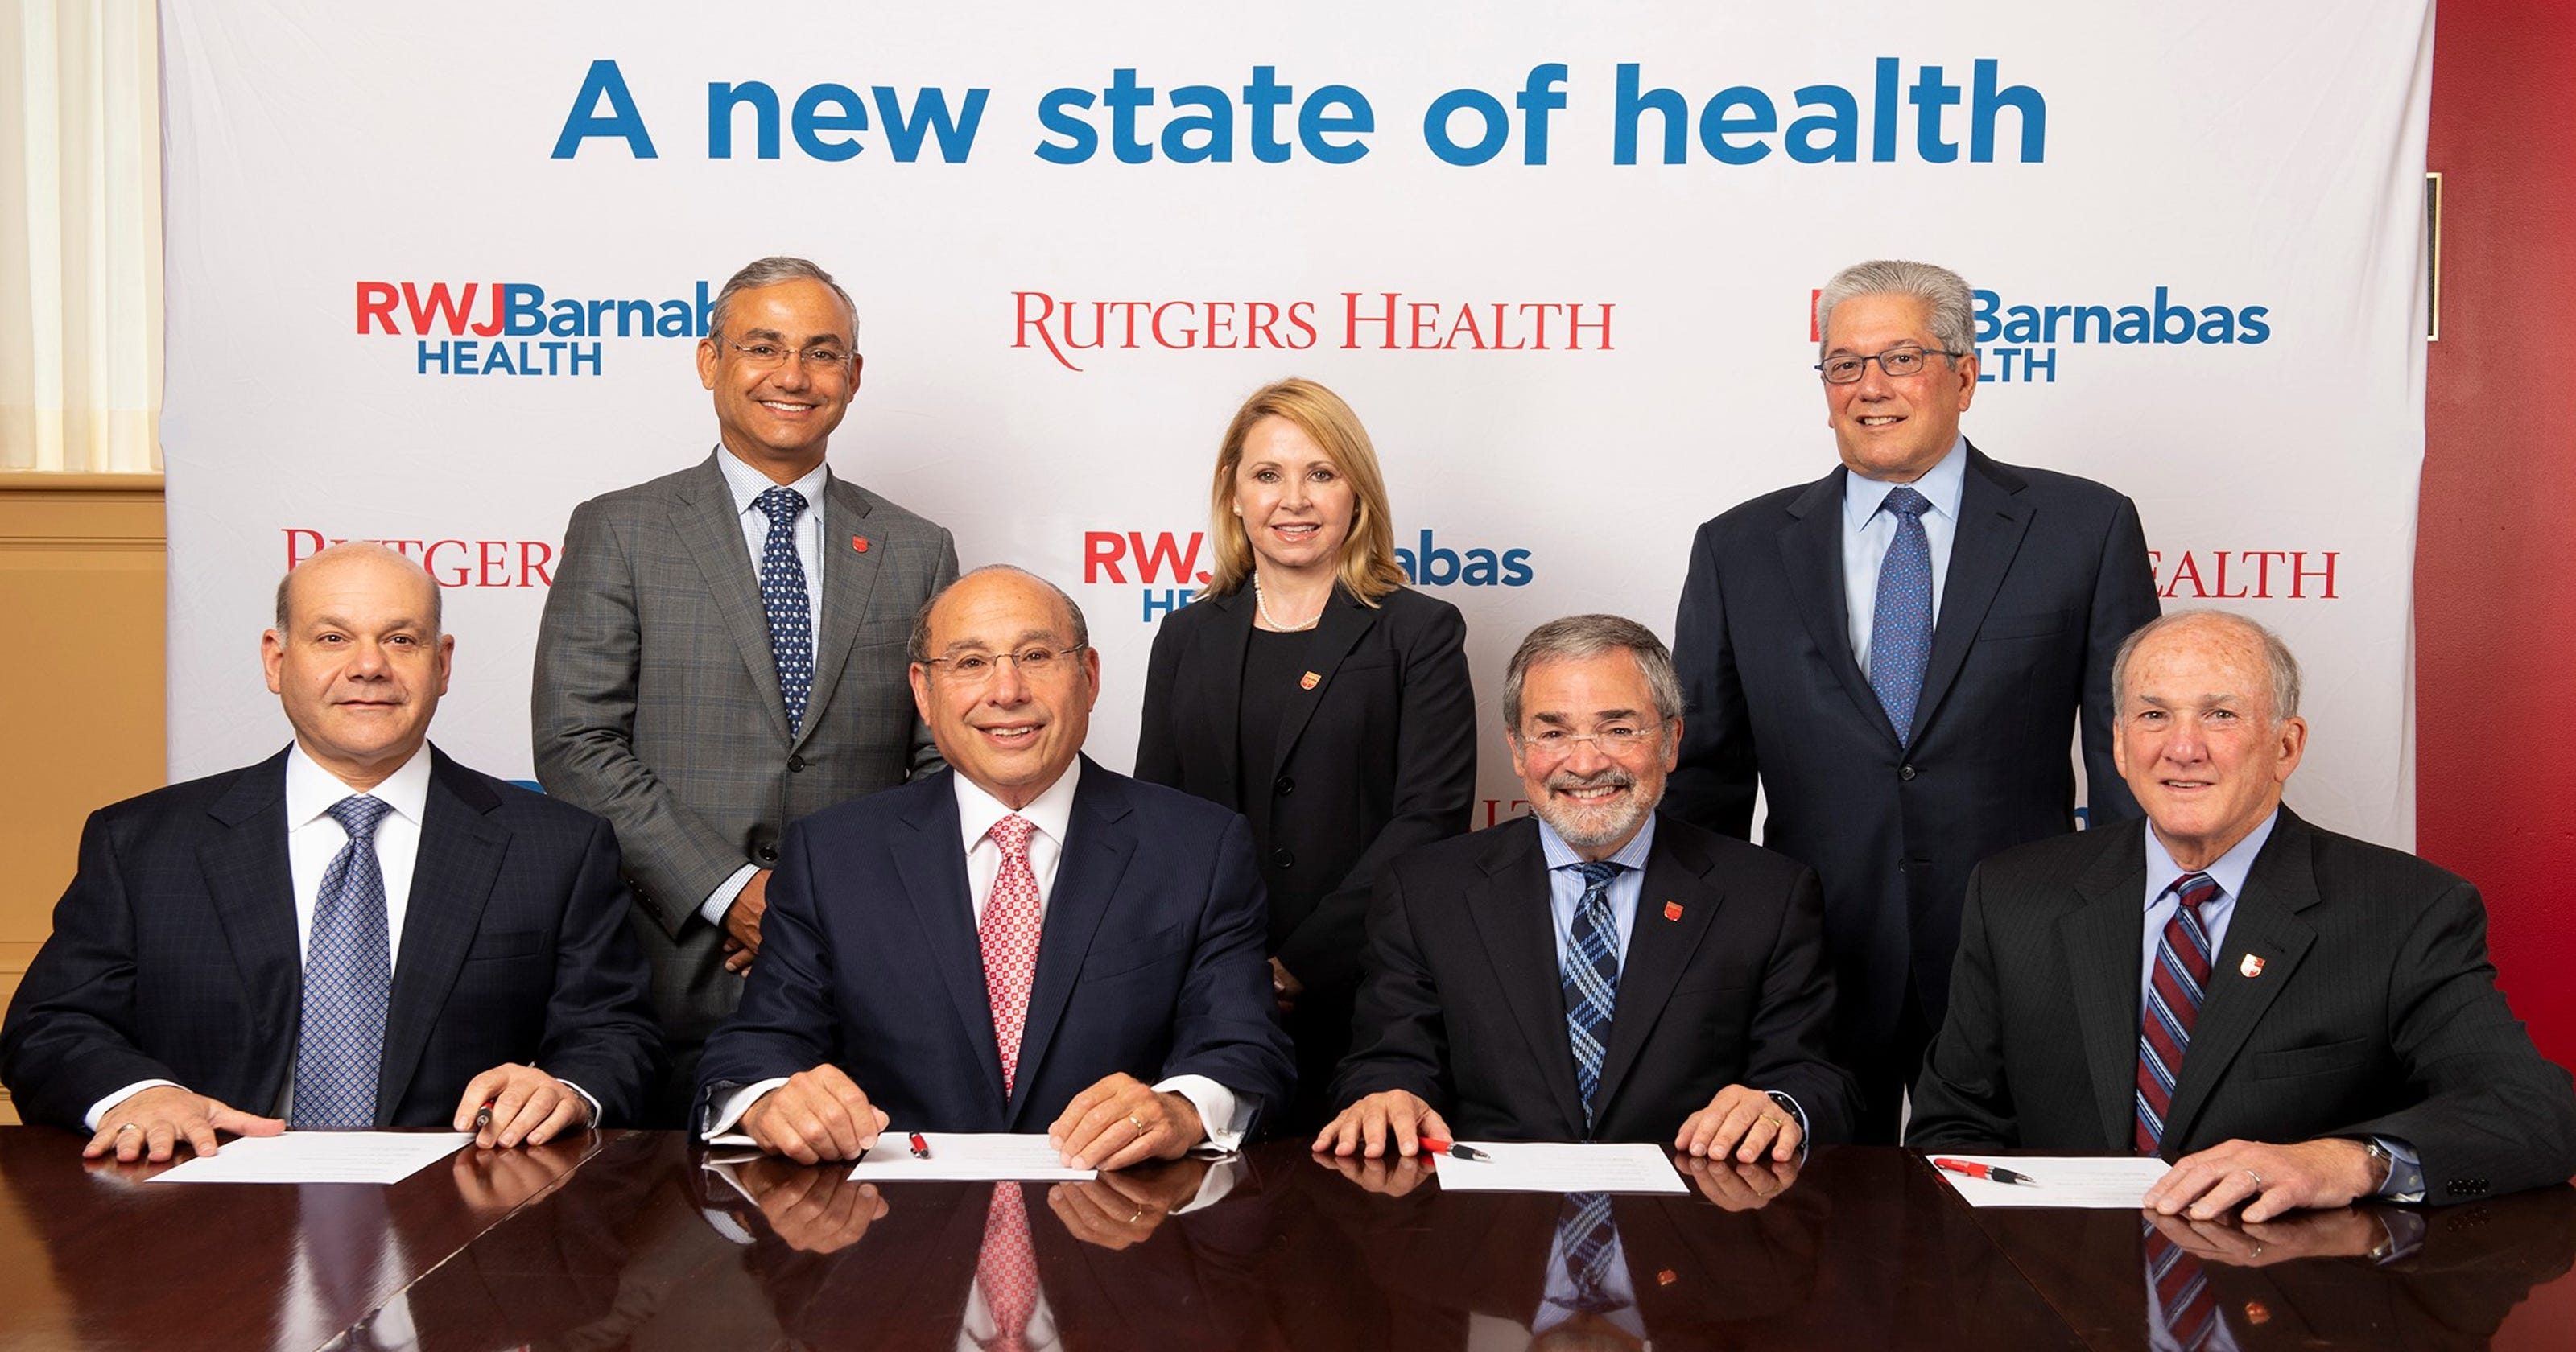 separation shoes ef782 f1ca4 Rutgers and RWJBarnabas Health create new academic health system